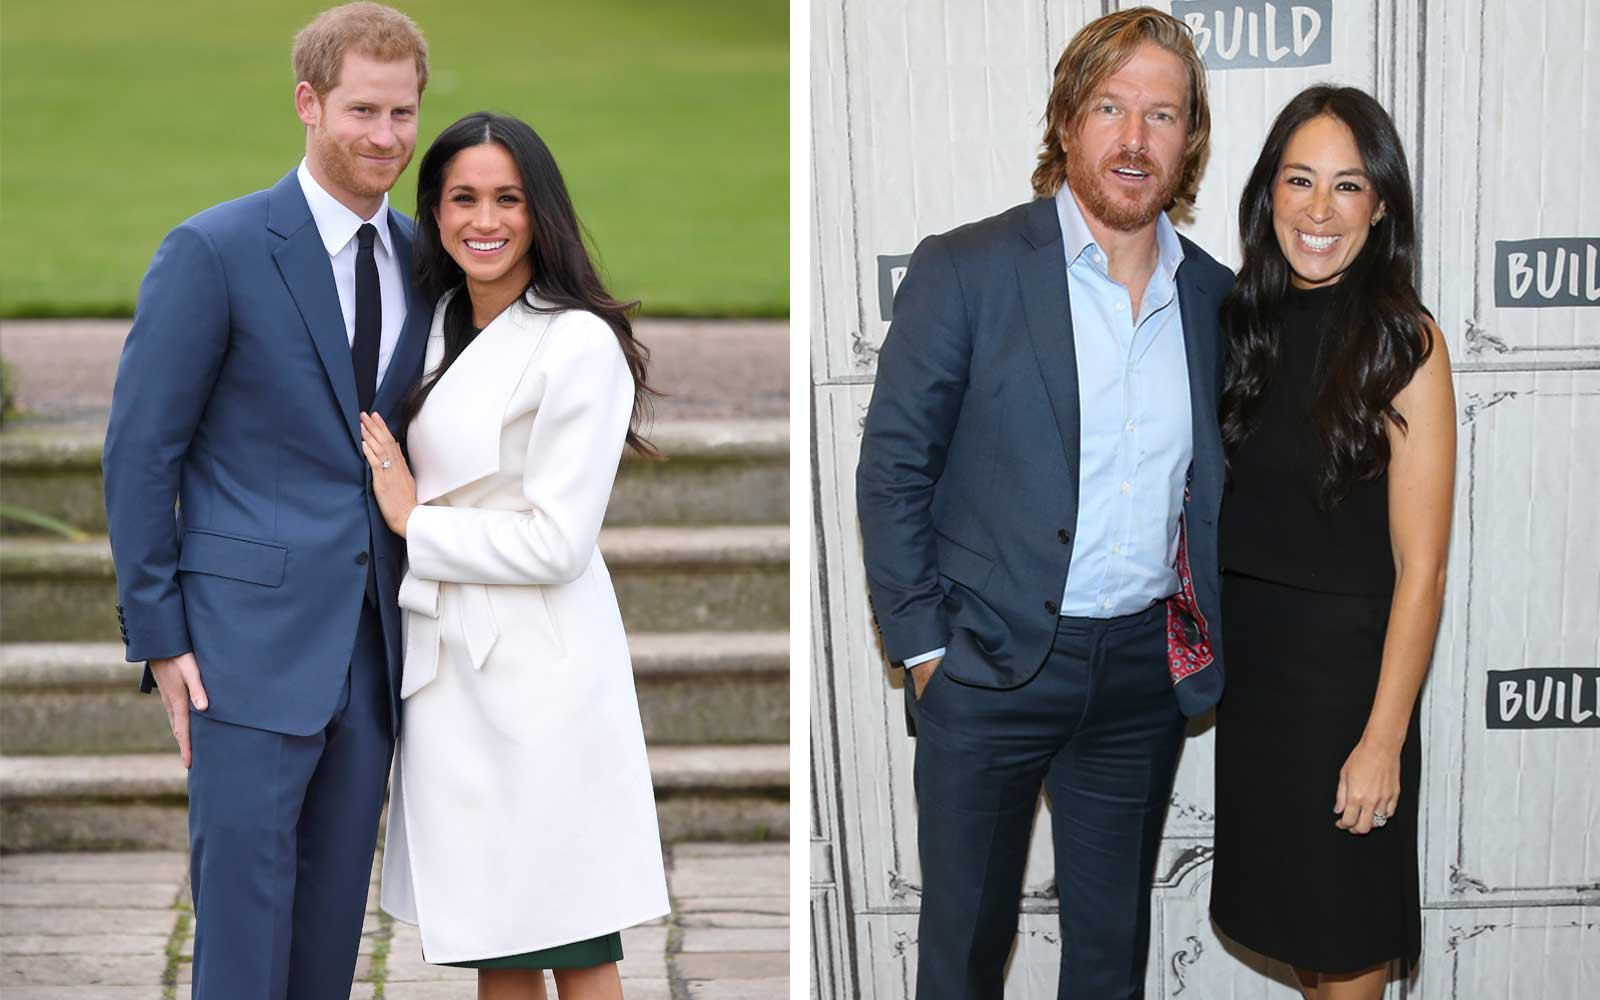 Prince Harry and Meghan Markle stun in three newly released engagement photos